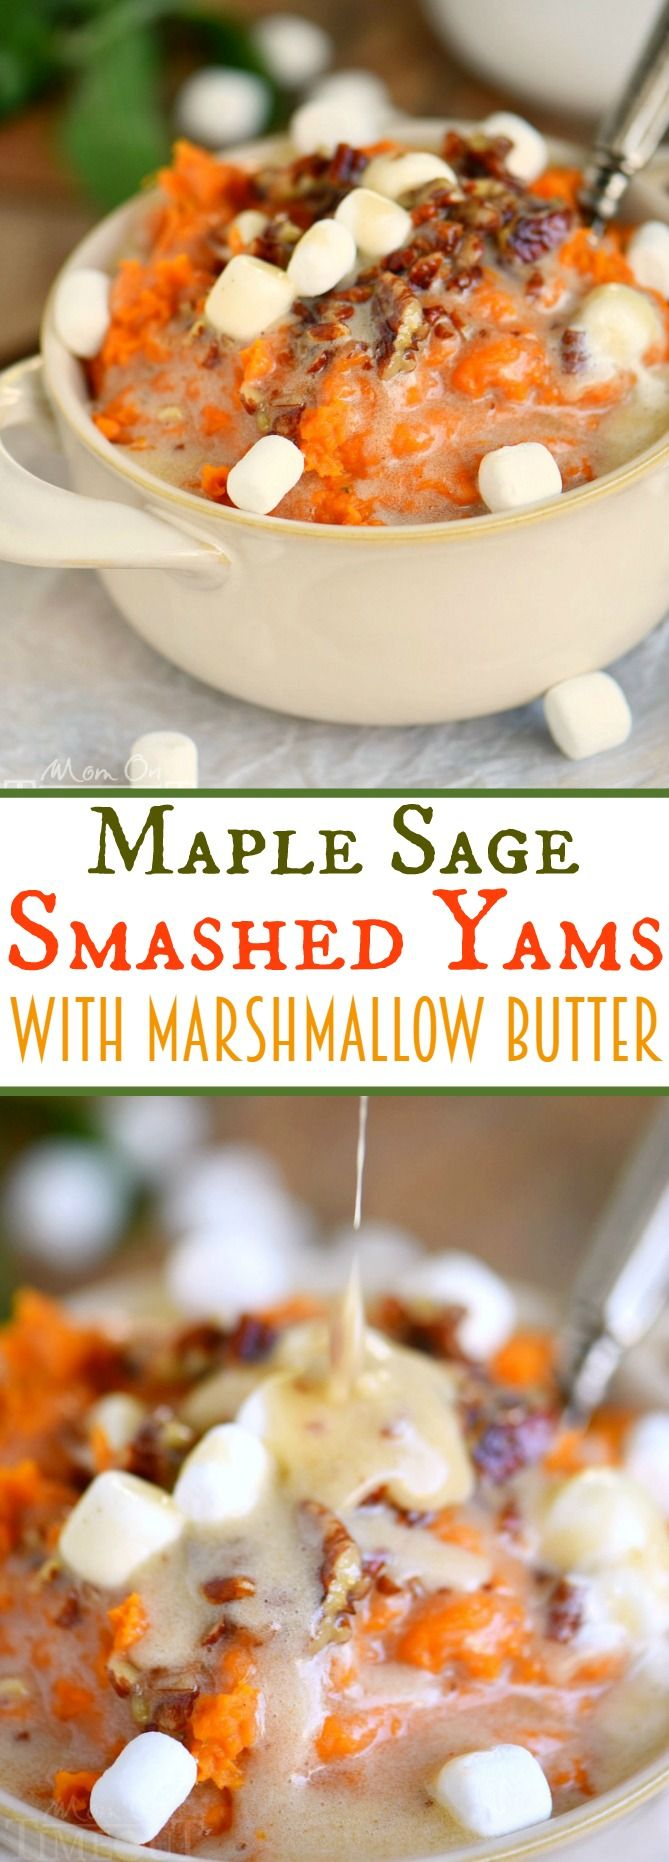 Maple Sage Smashed Yams with Marshmallow Butter - the side dish everyone will be yammering about for days (pun intended)! This easy side dish is packed full of flavor, takes less than 30 minutes to prepare, doesn't require the oven, and can be made ahead of time! You're welcome :)